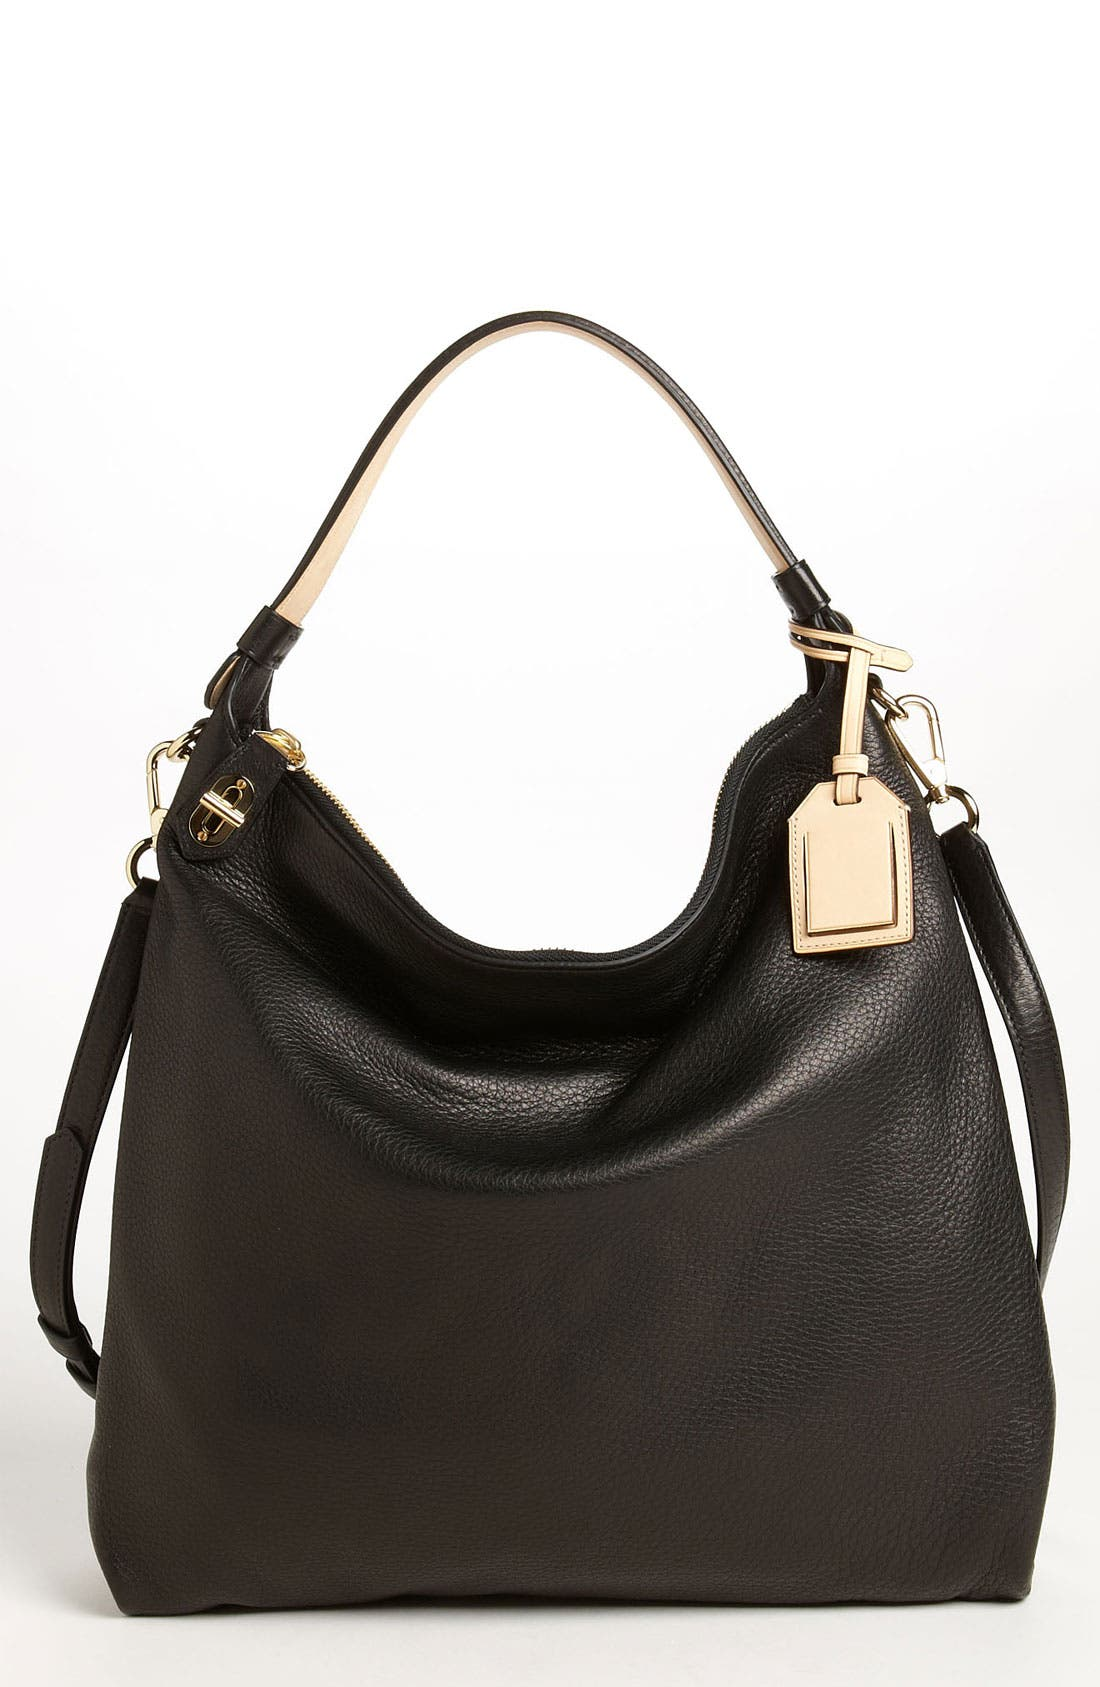 Alternate Image 1 Selected - Reed Krakoff 'Standard' Leather Hobo